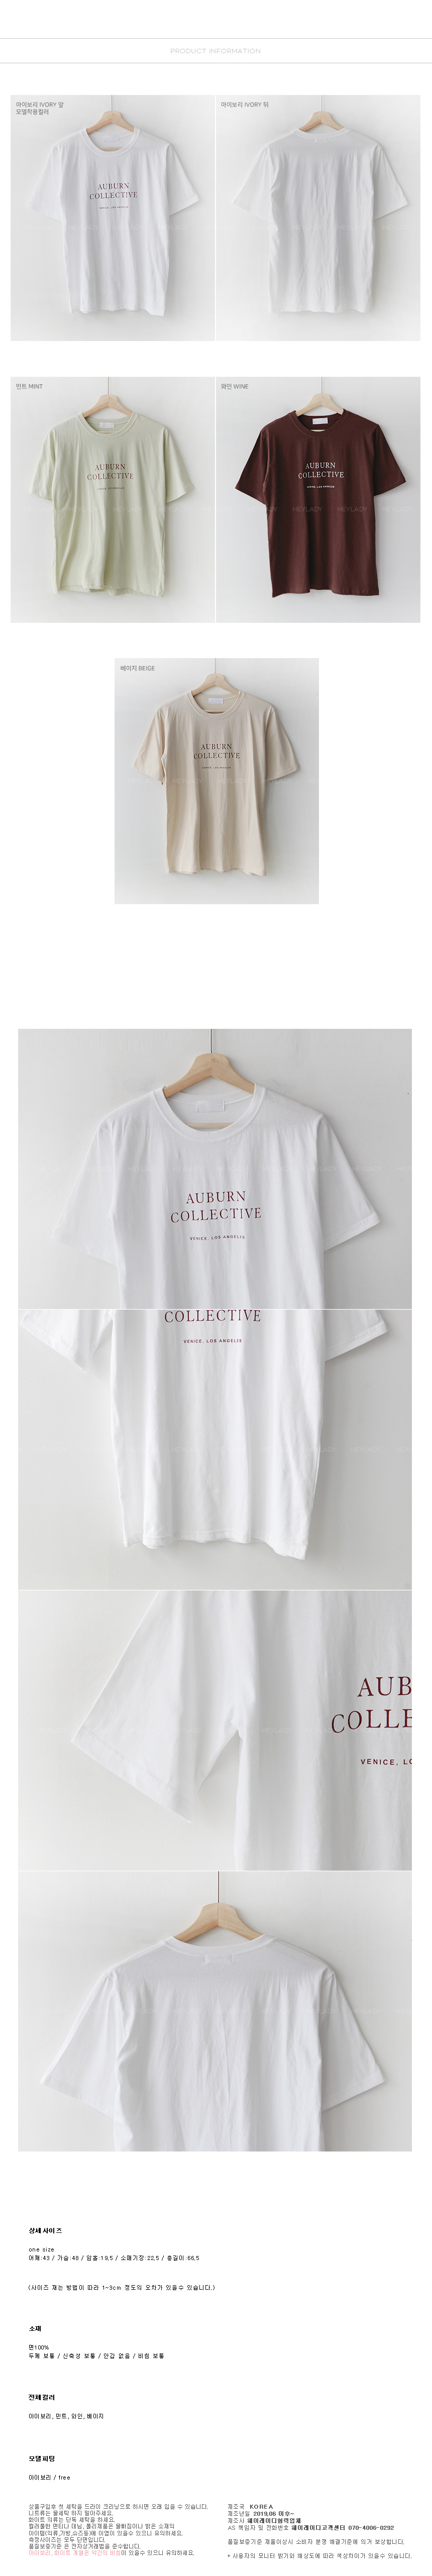 Wibby lettering short-sleeved tee